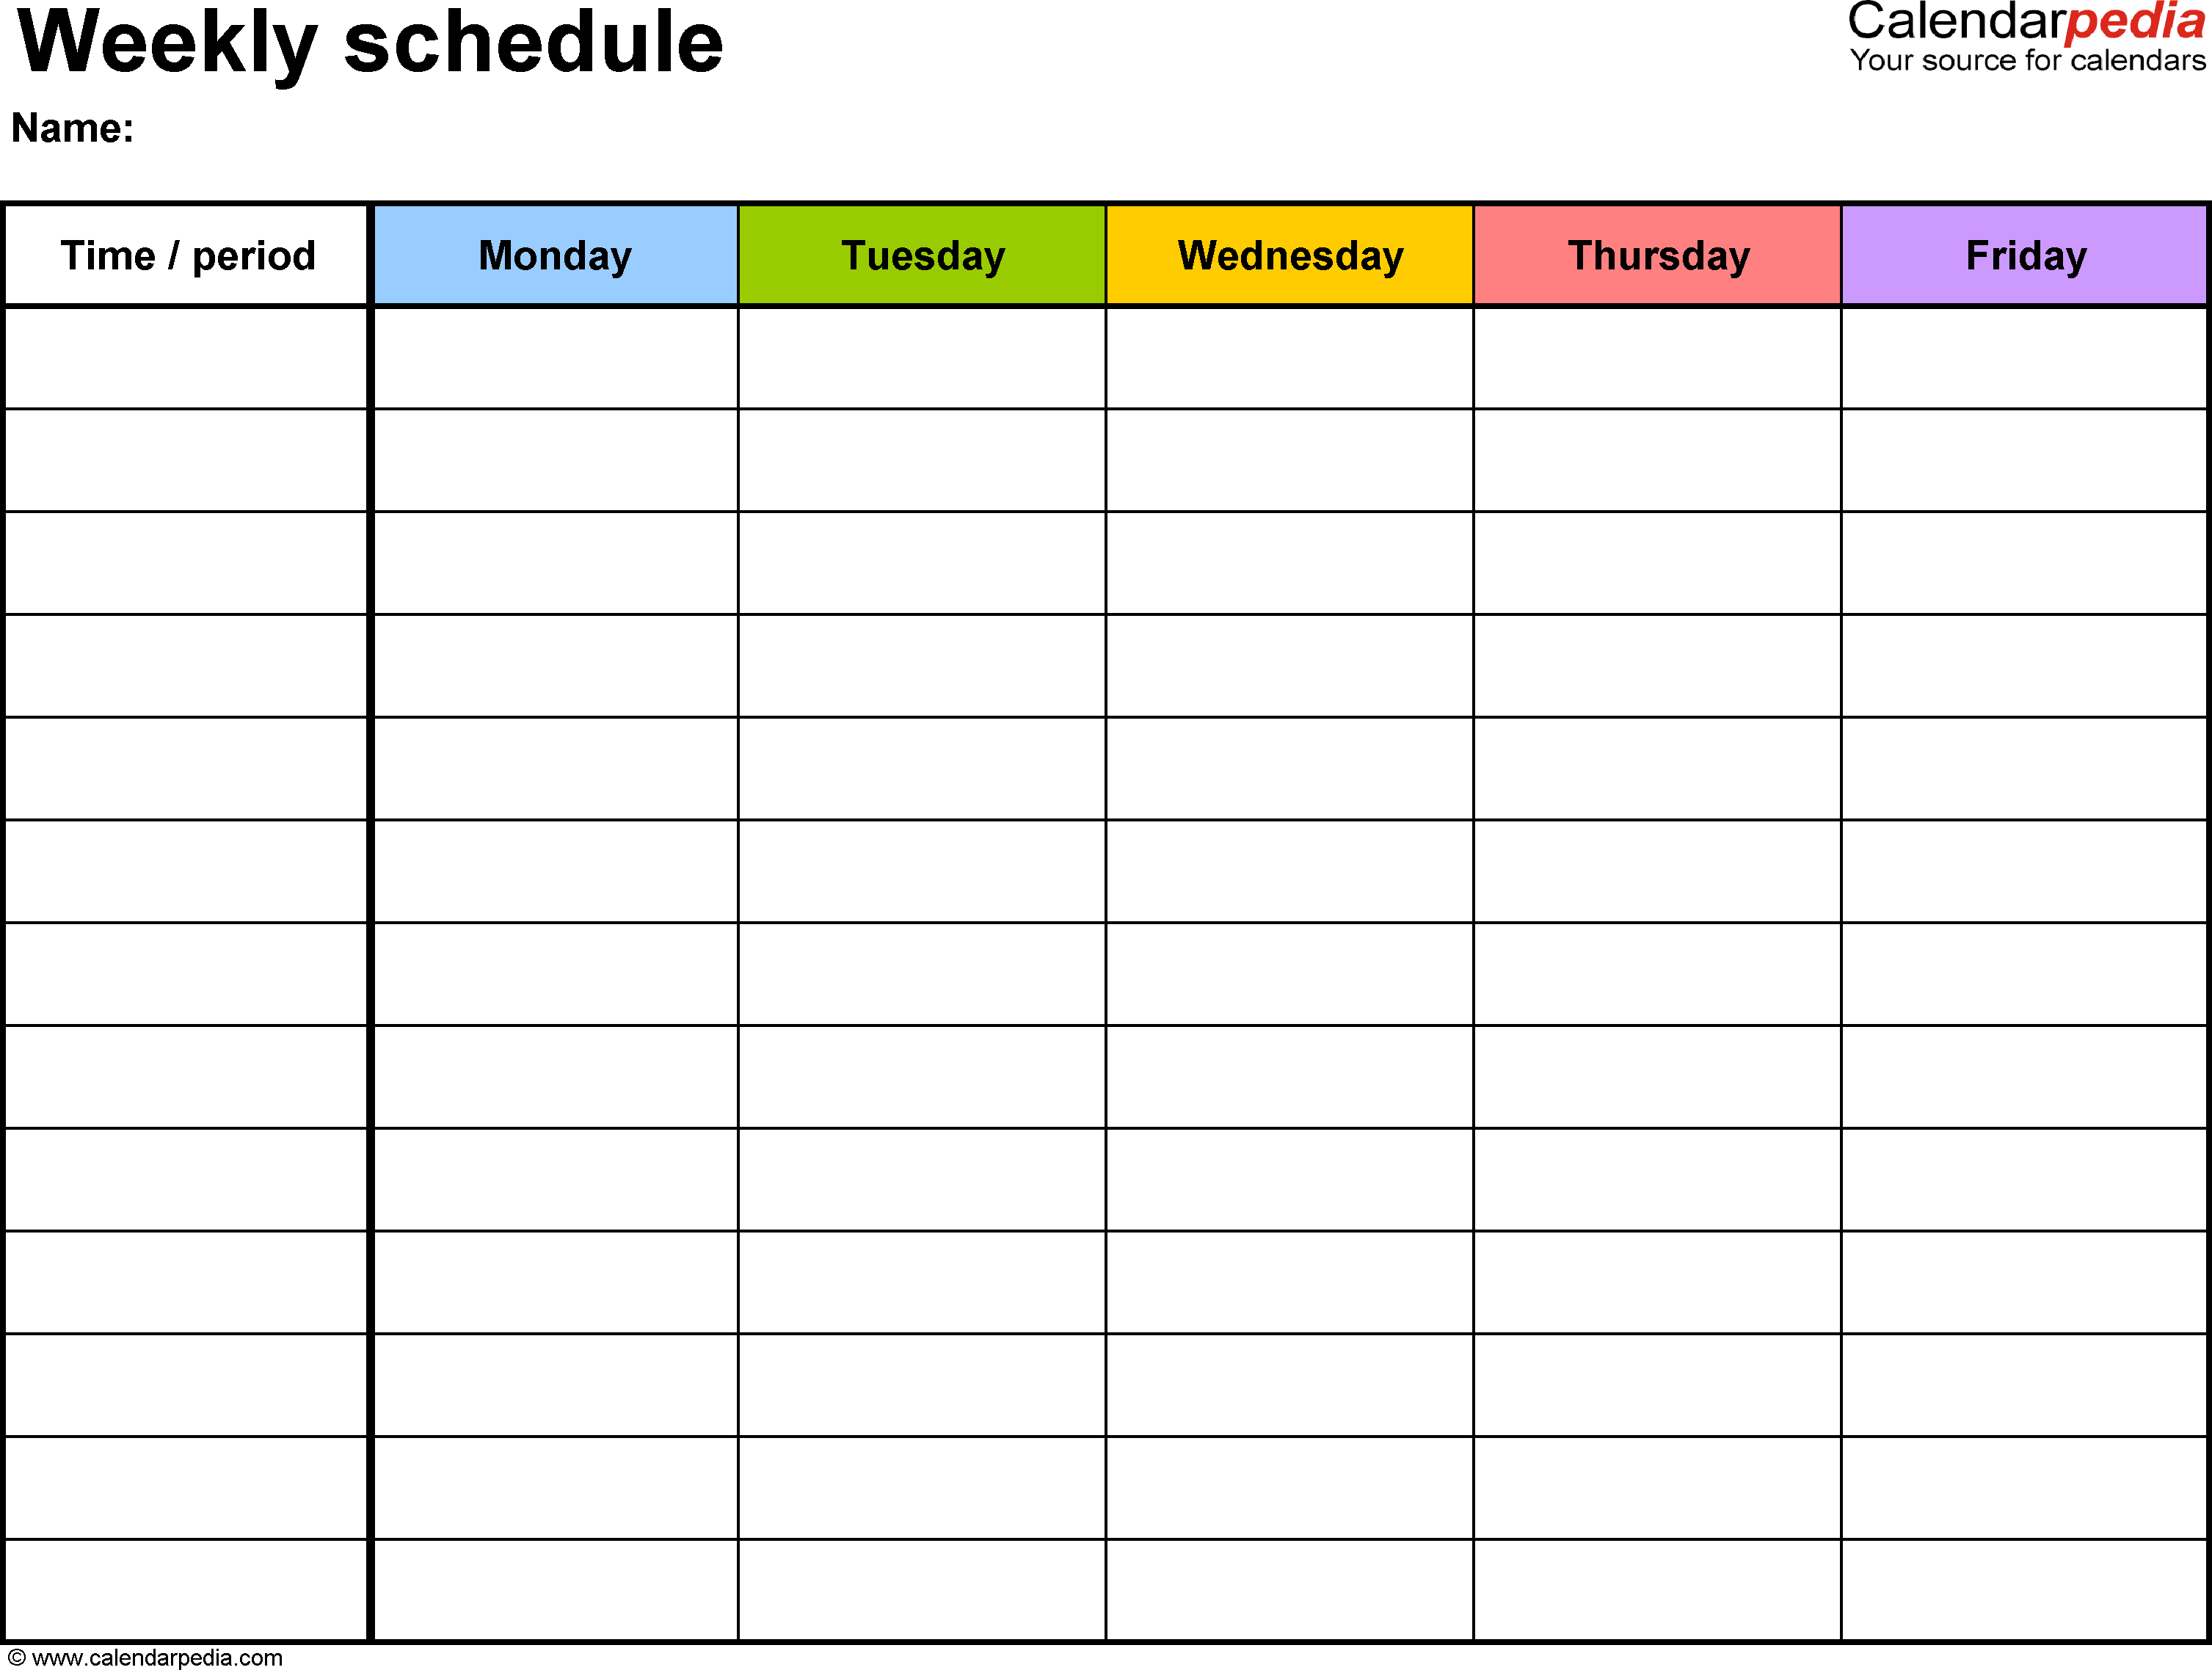 Download a free Weekly Class Schedule template for Excel